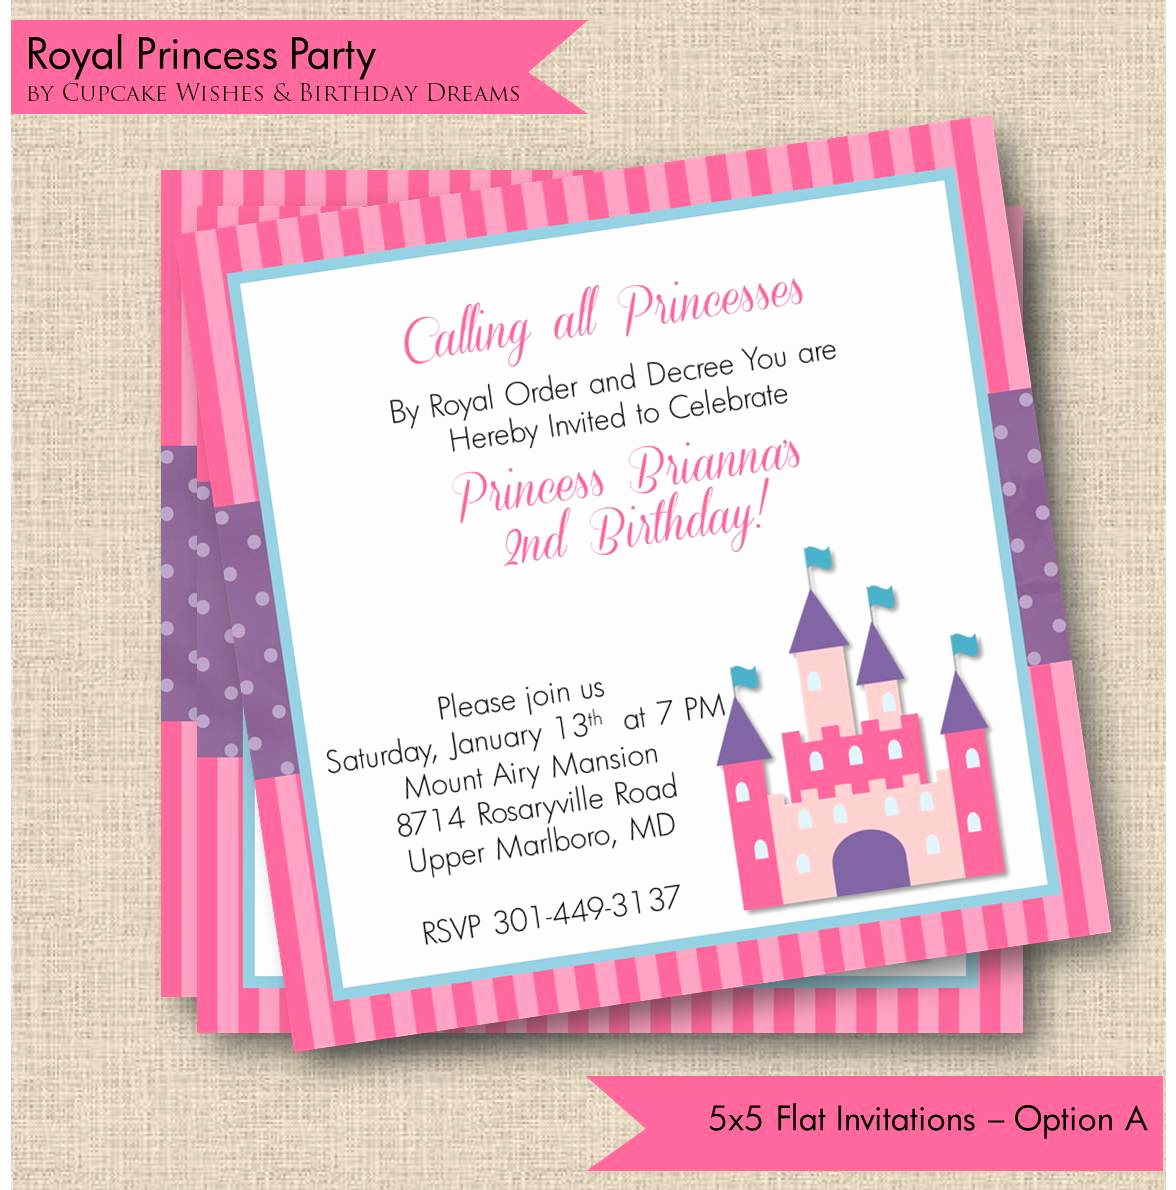 Princess Tea Party Invitation Wow Best Of Cupcake Wishes & Birthday Dreams July 2012